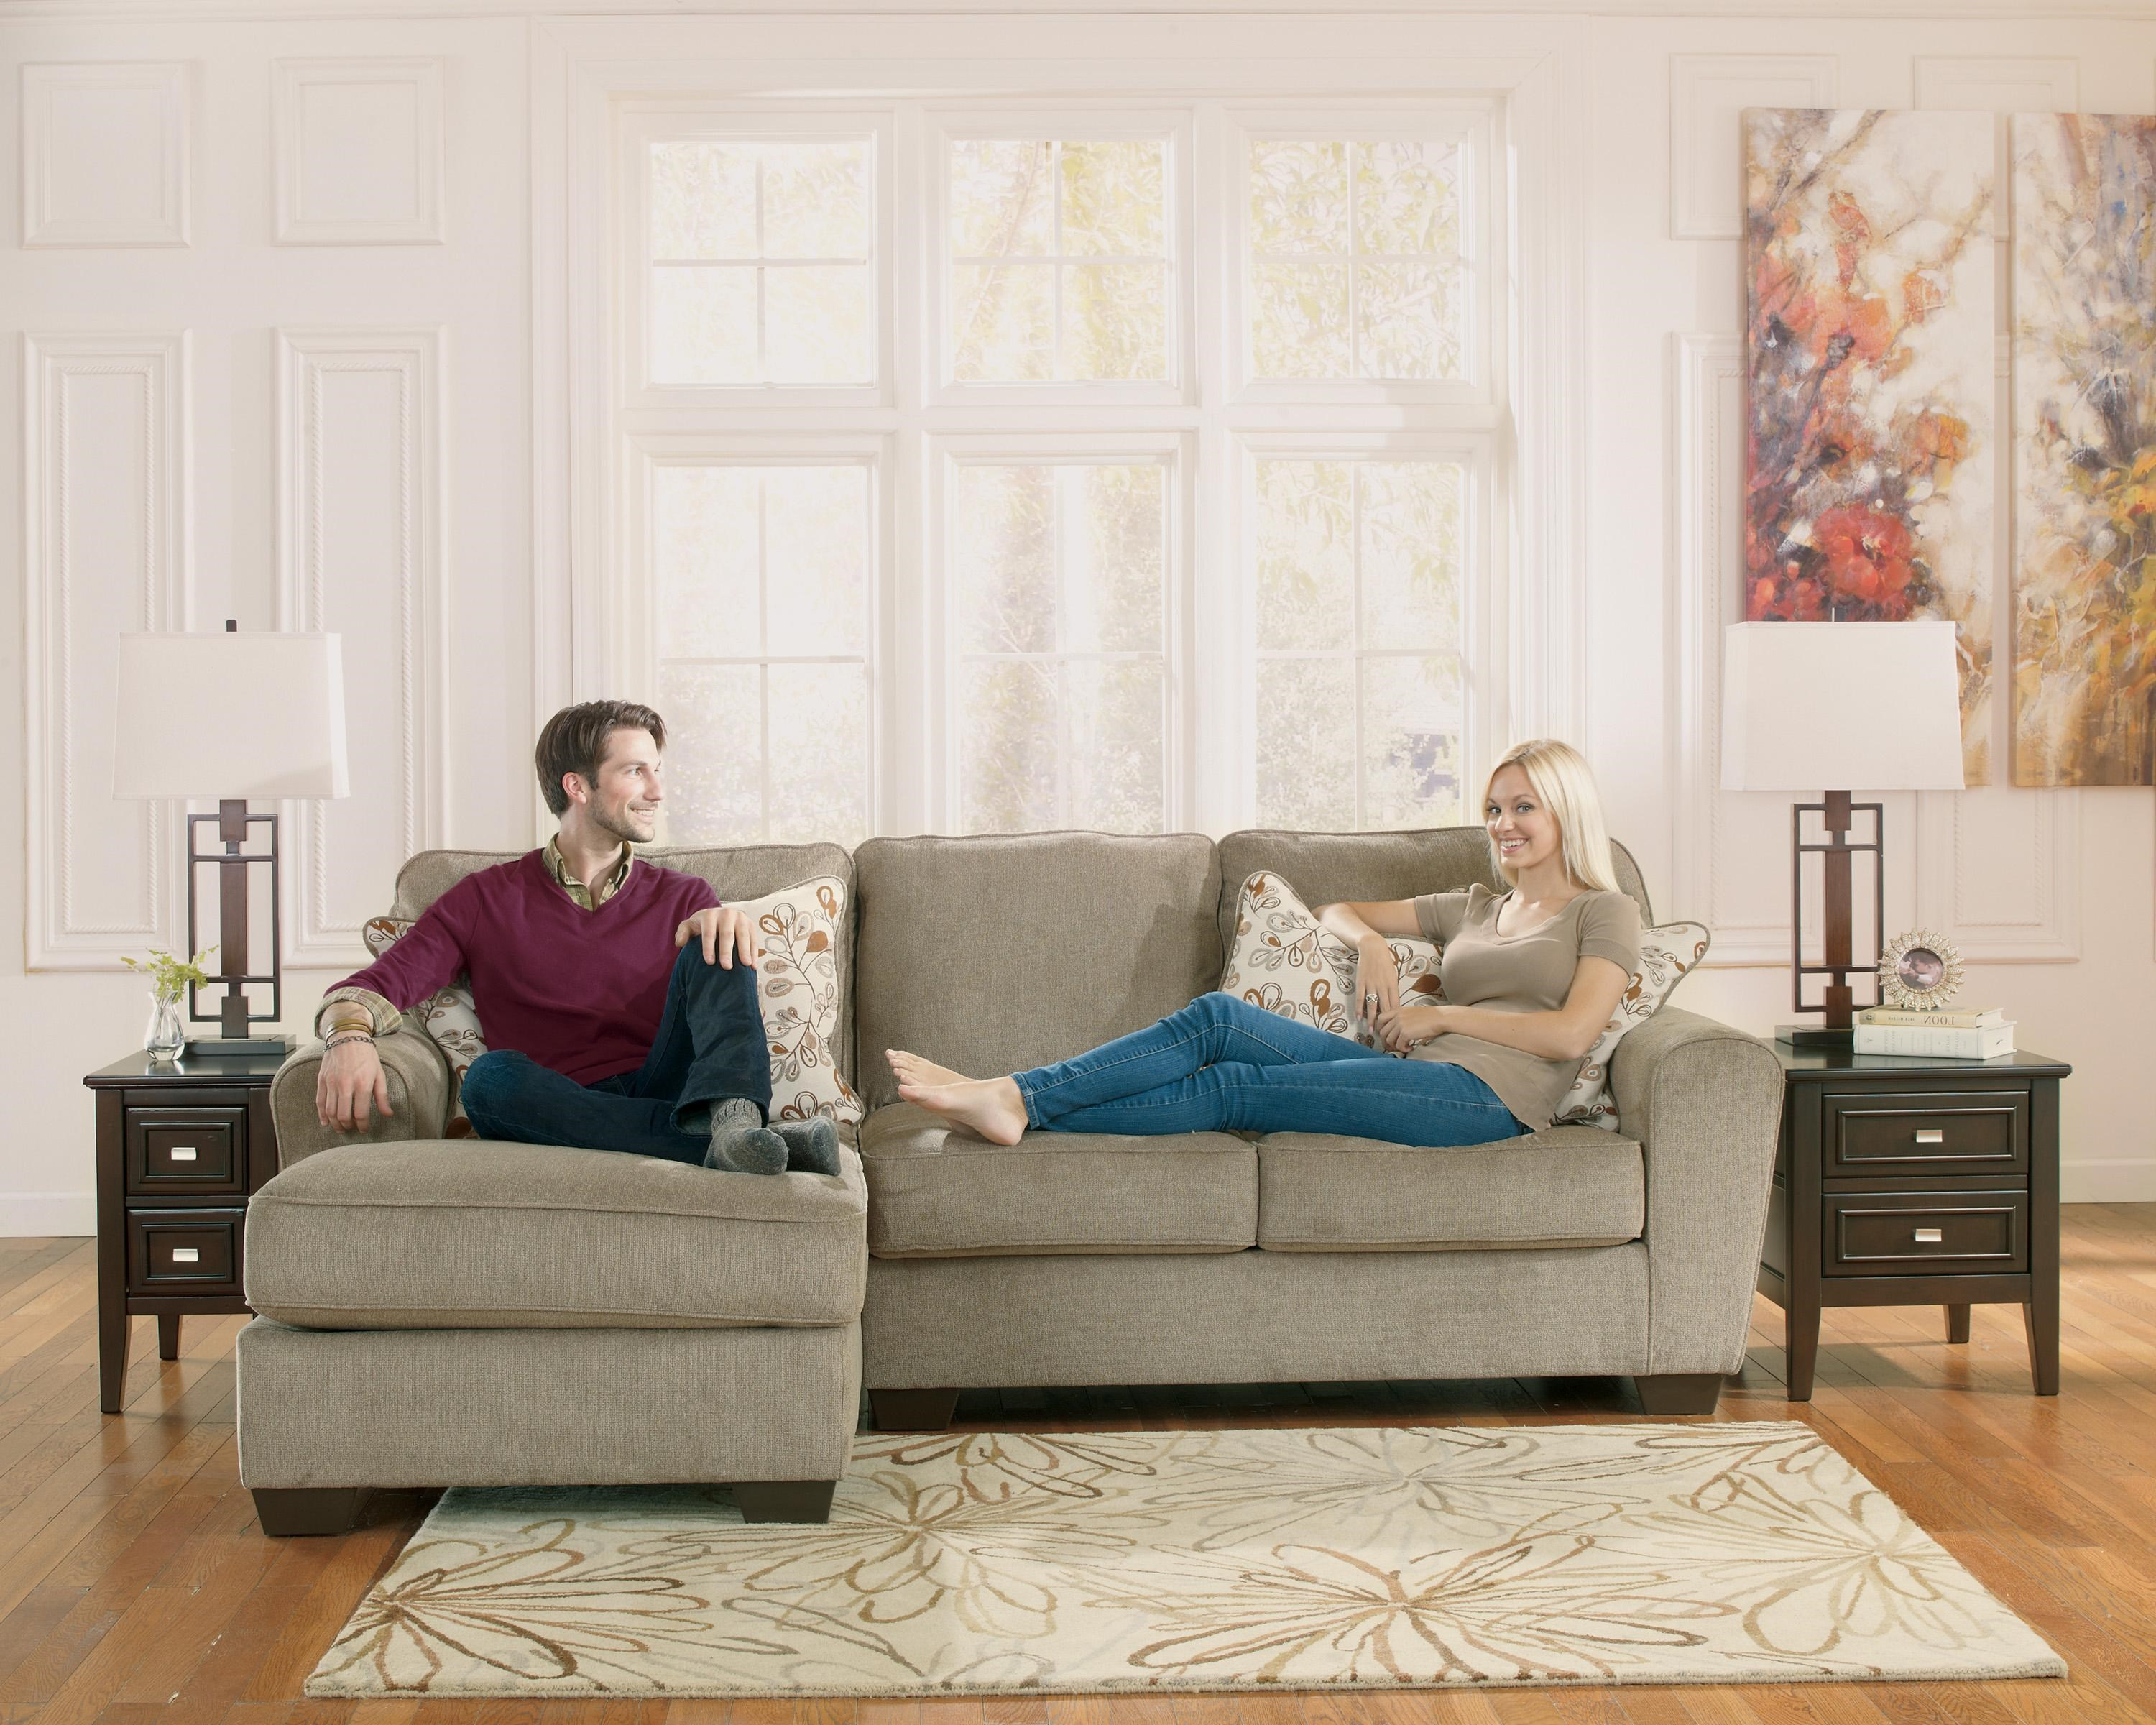 Ashley Furniture Patola Park - Patina 2-Piece Sectional with Left Chaise : ashley furniture patola park sectional - Sectionals, Sofas & Couches